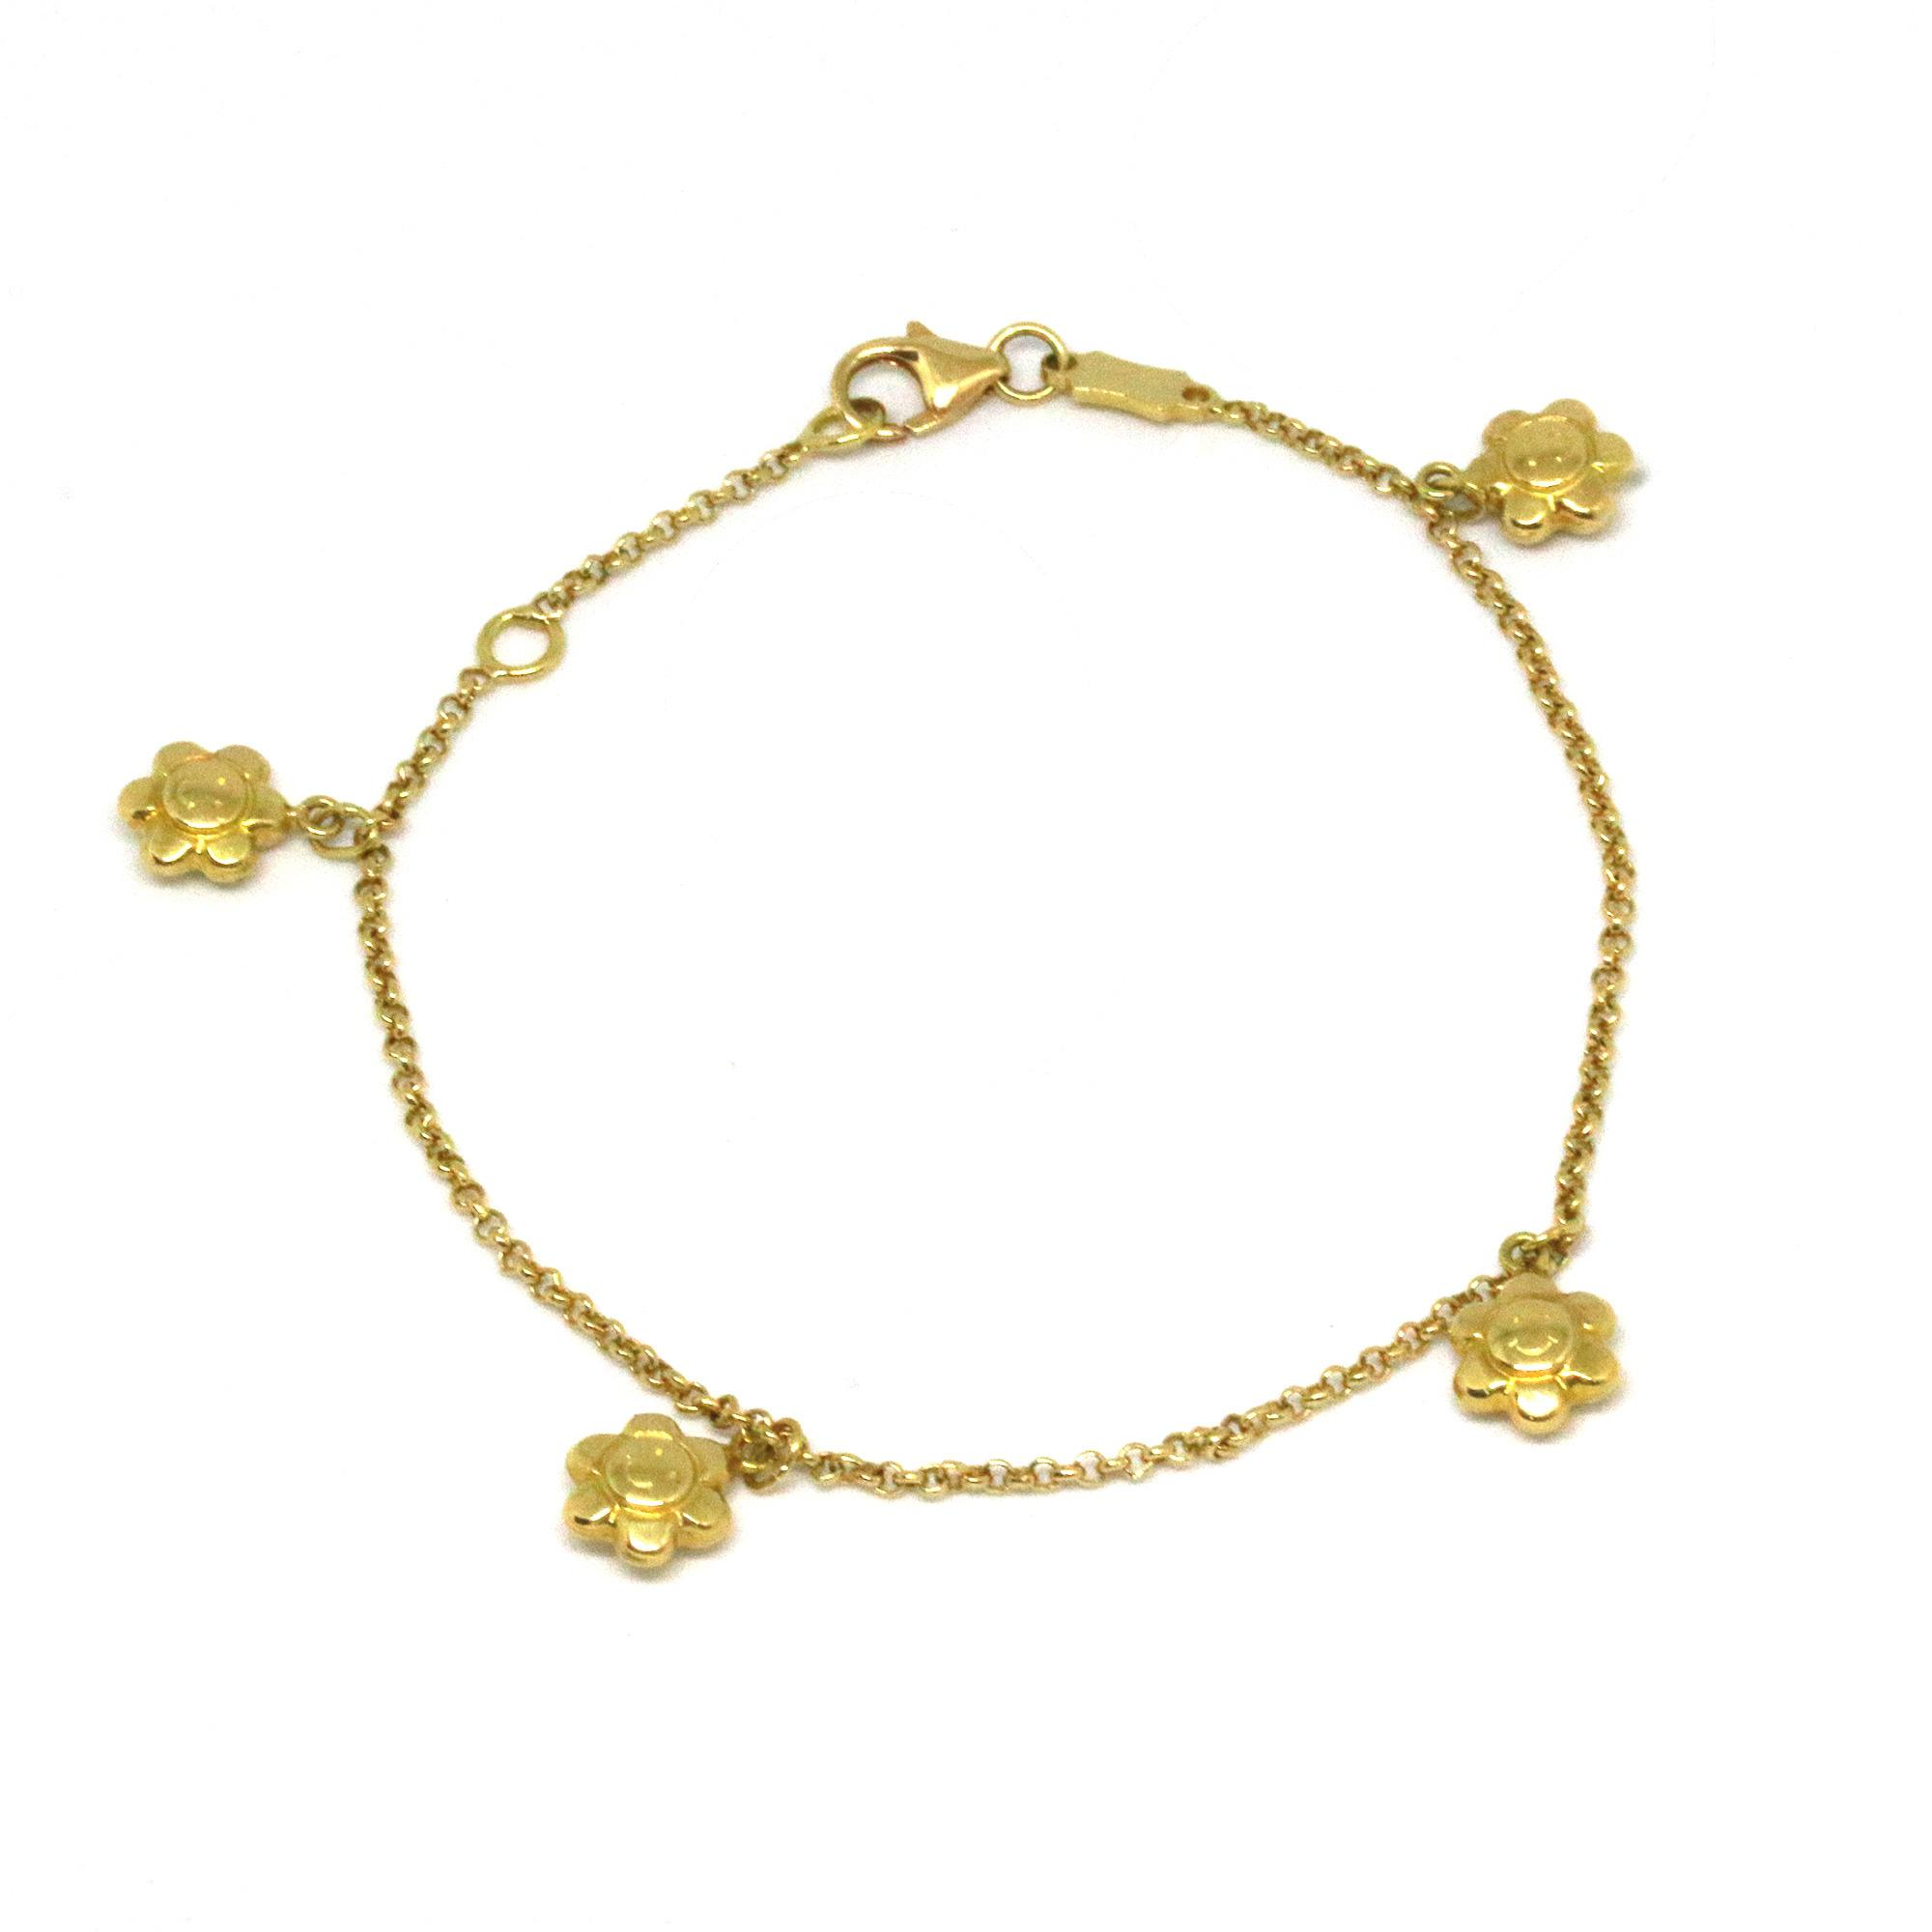 sale womens just bracelet jewels anklet karat shop for gold online pure bracelets flower yellow design women